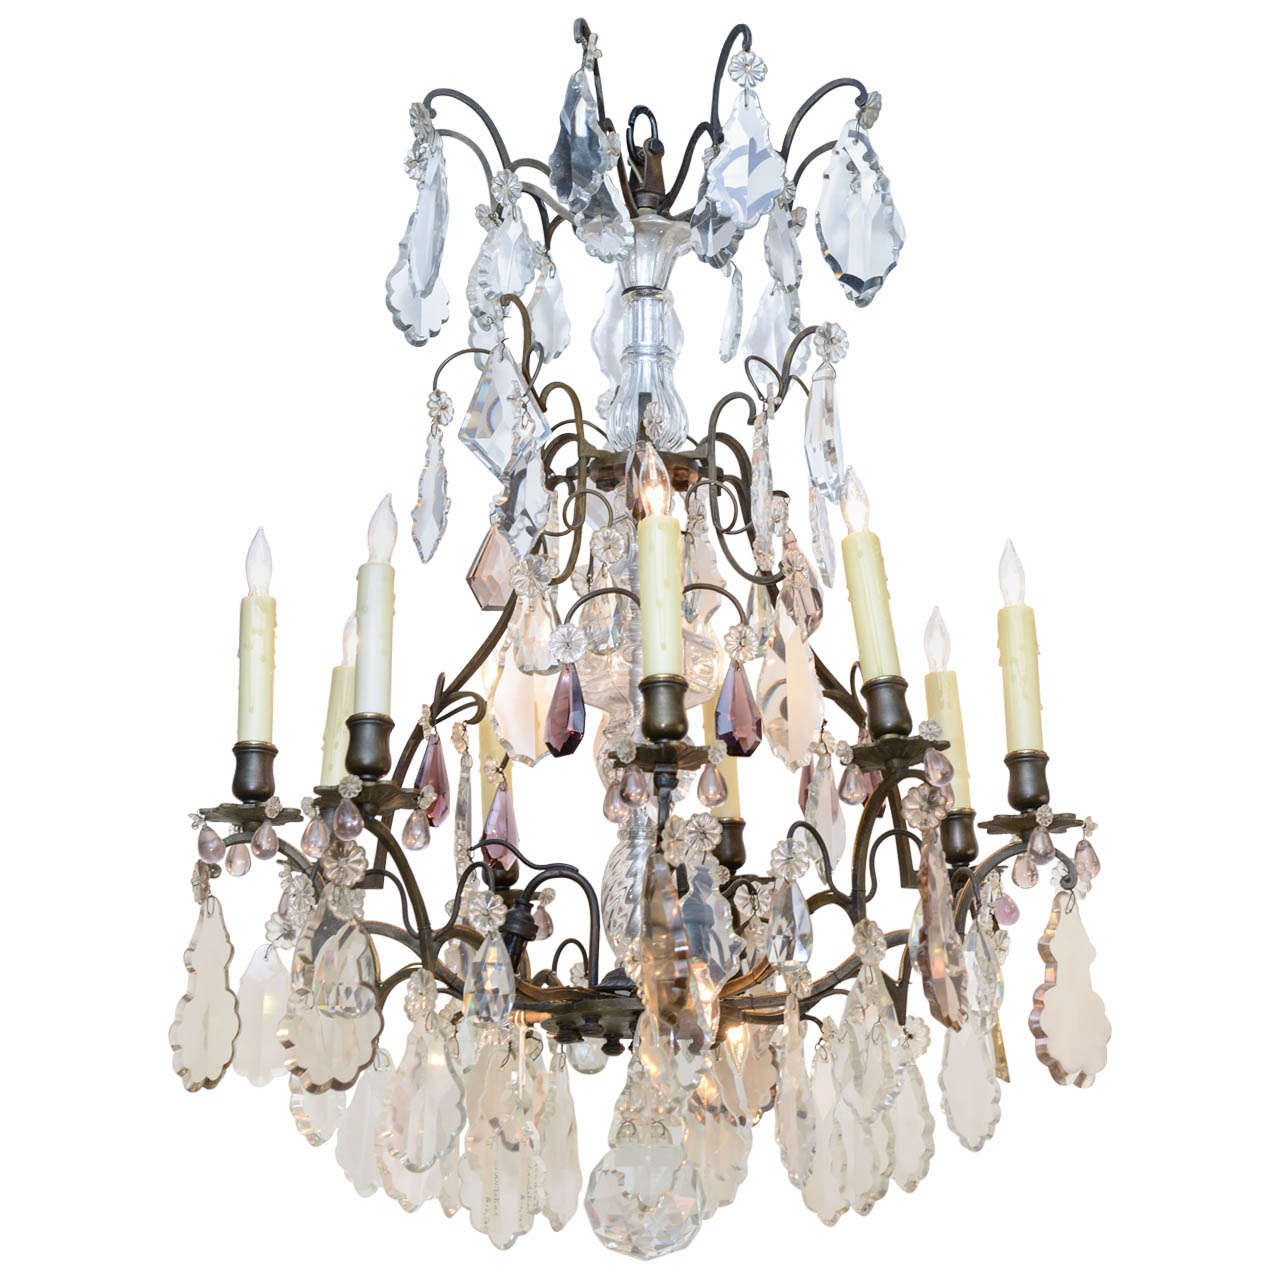 19th Century Baccarat Crystal Chandelier At 1stdibs